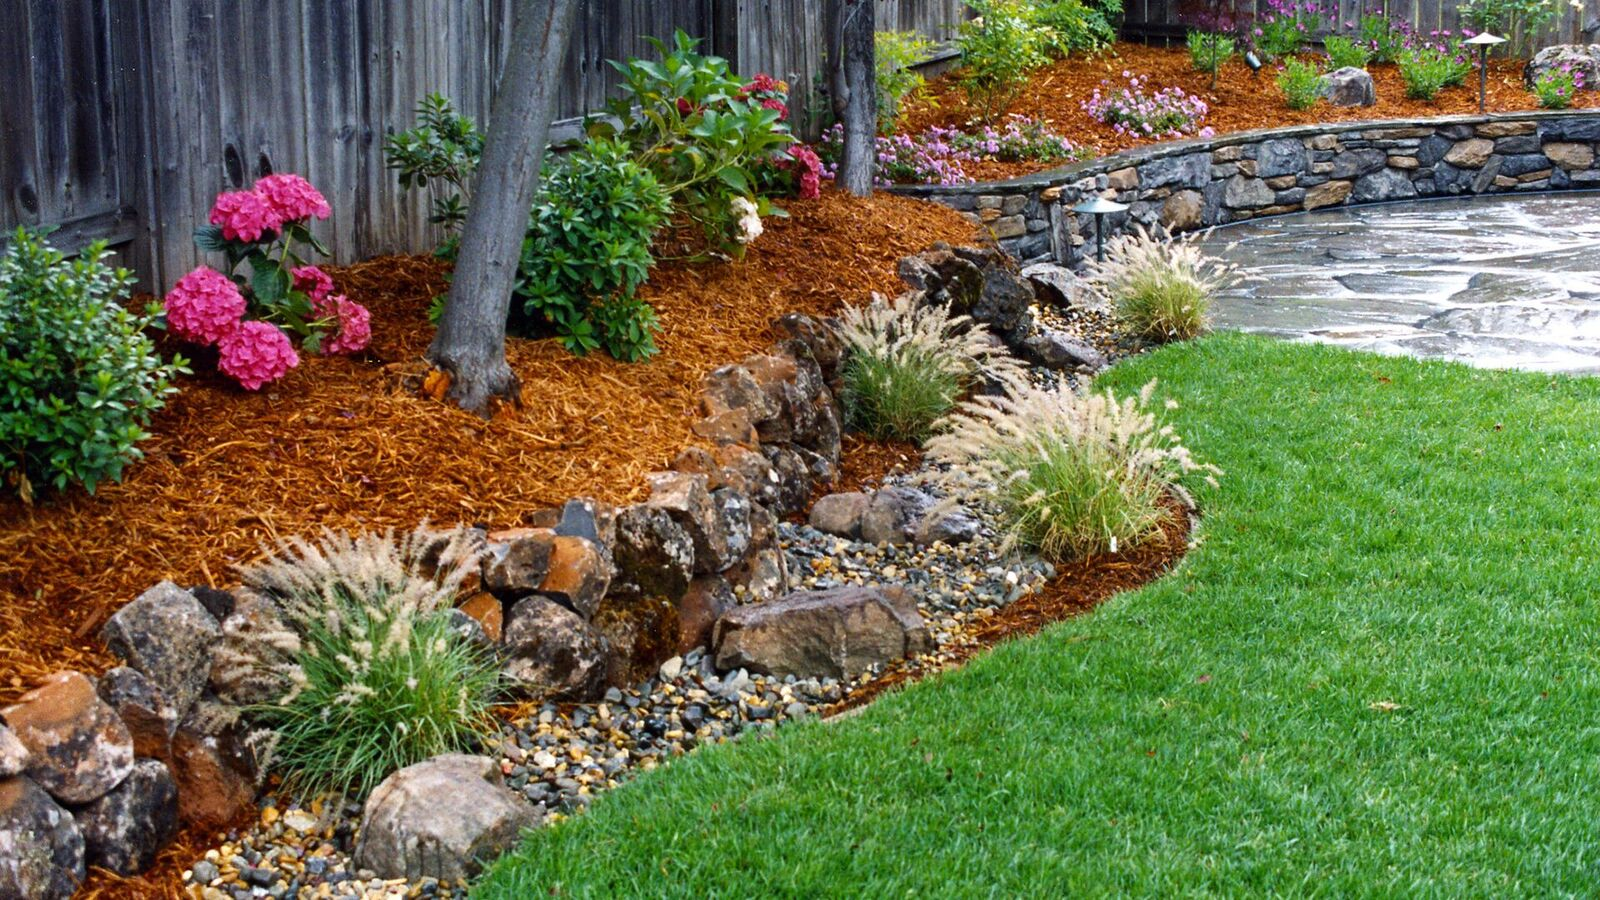 fieldstone-wall-connects-a-patio-landsca